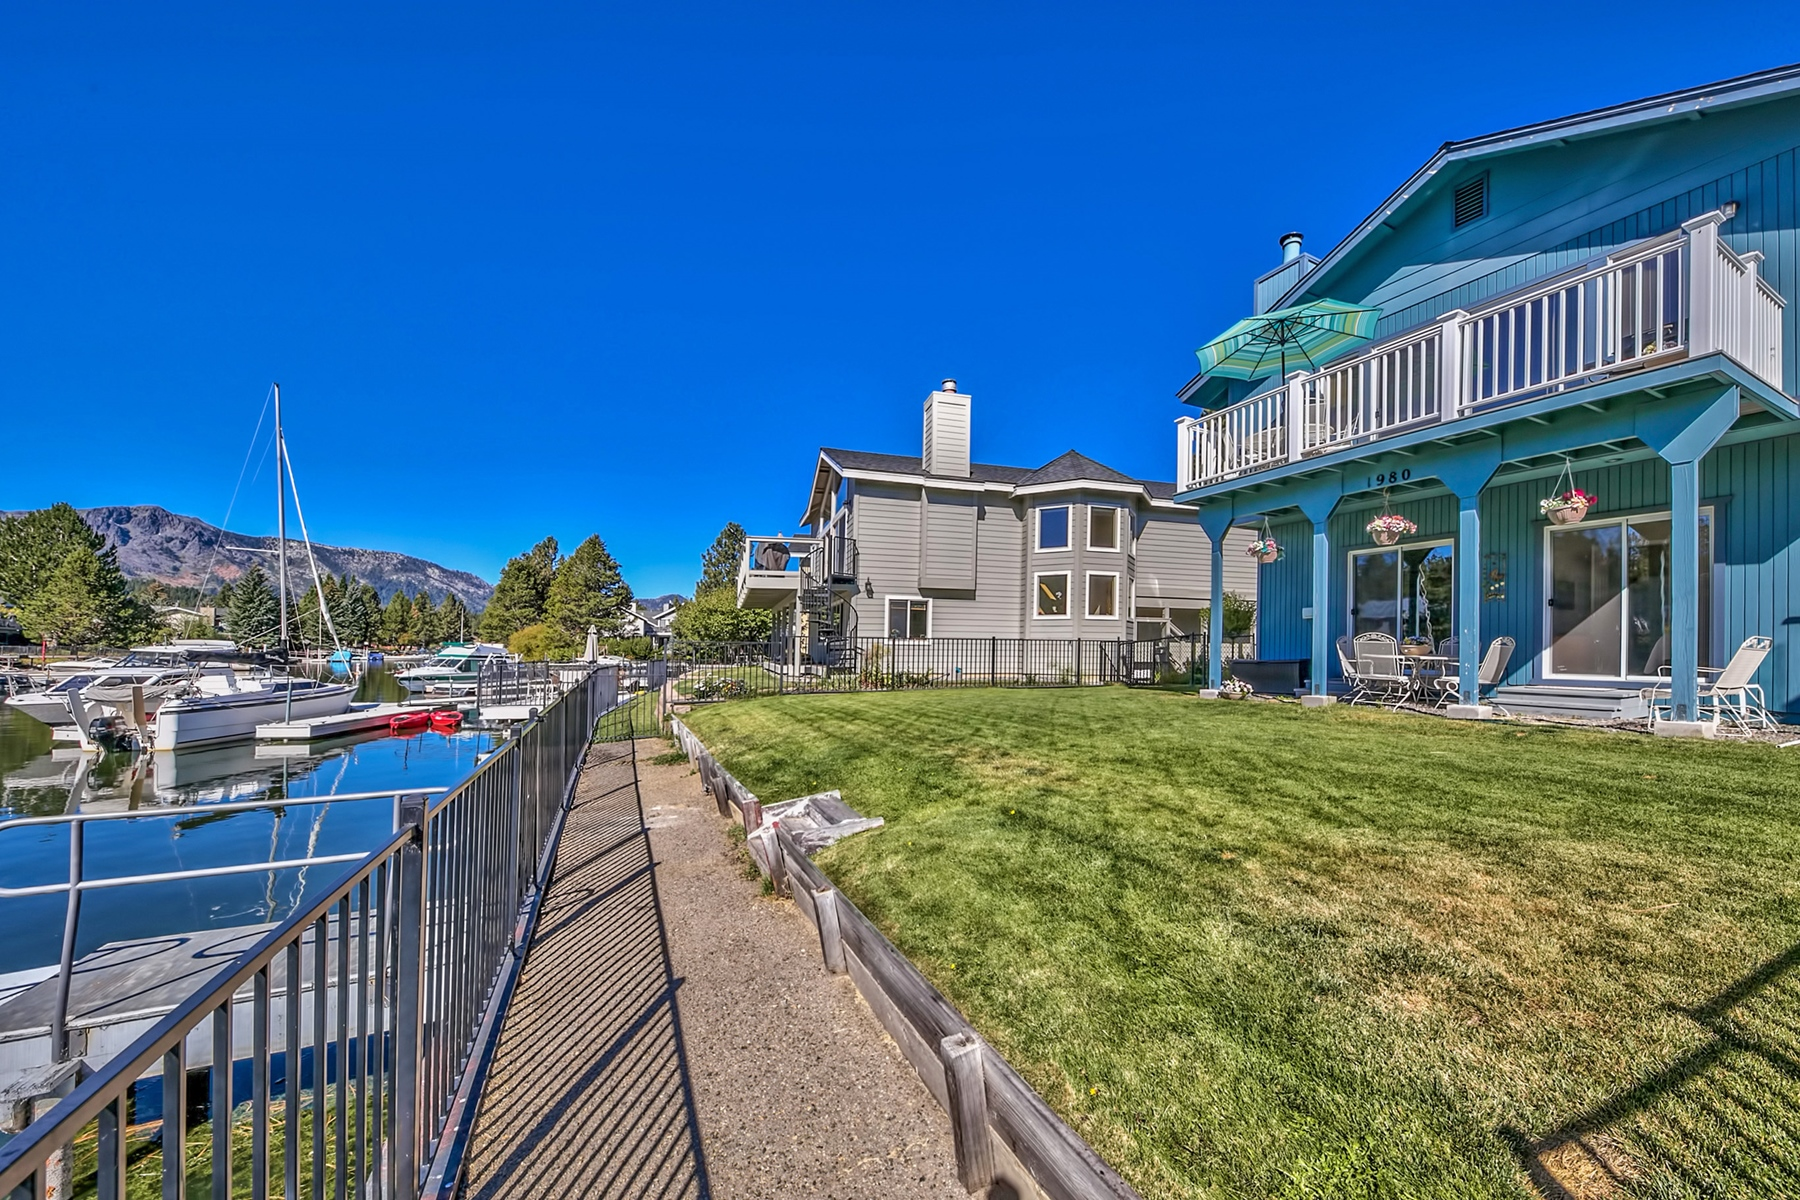 Single Family Home for Active at 1980 Garmish Court, South Lake Tahoe, CA, 96150 1980 Garmish Court South Lake Tahoe, California 96150 United States